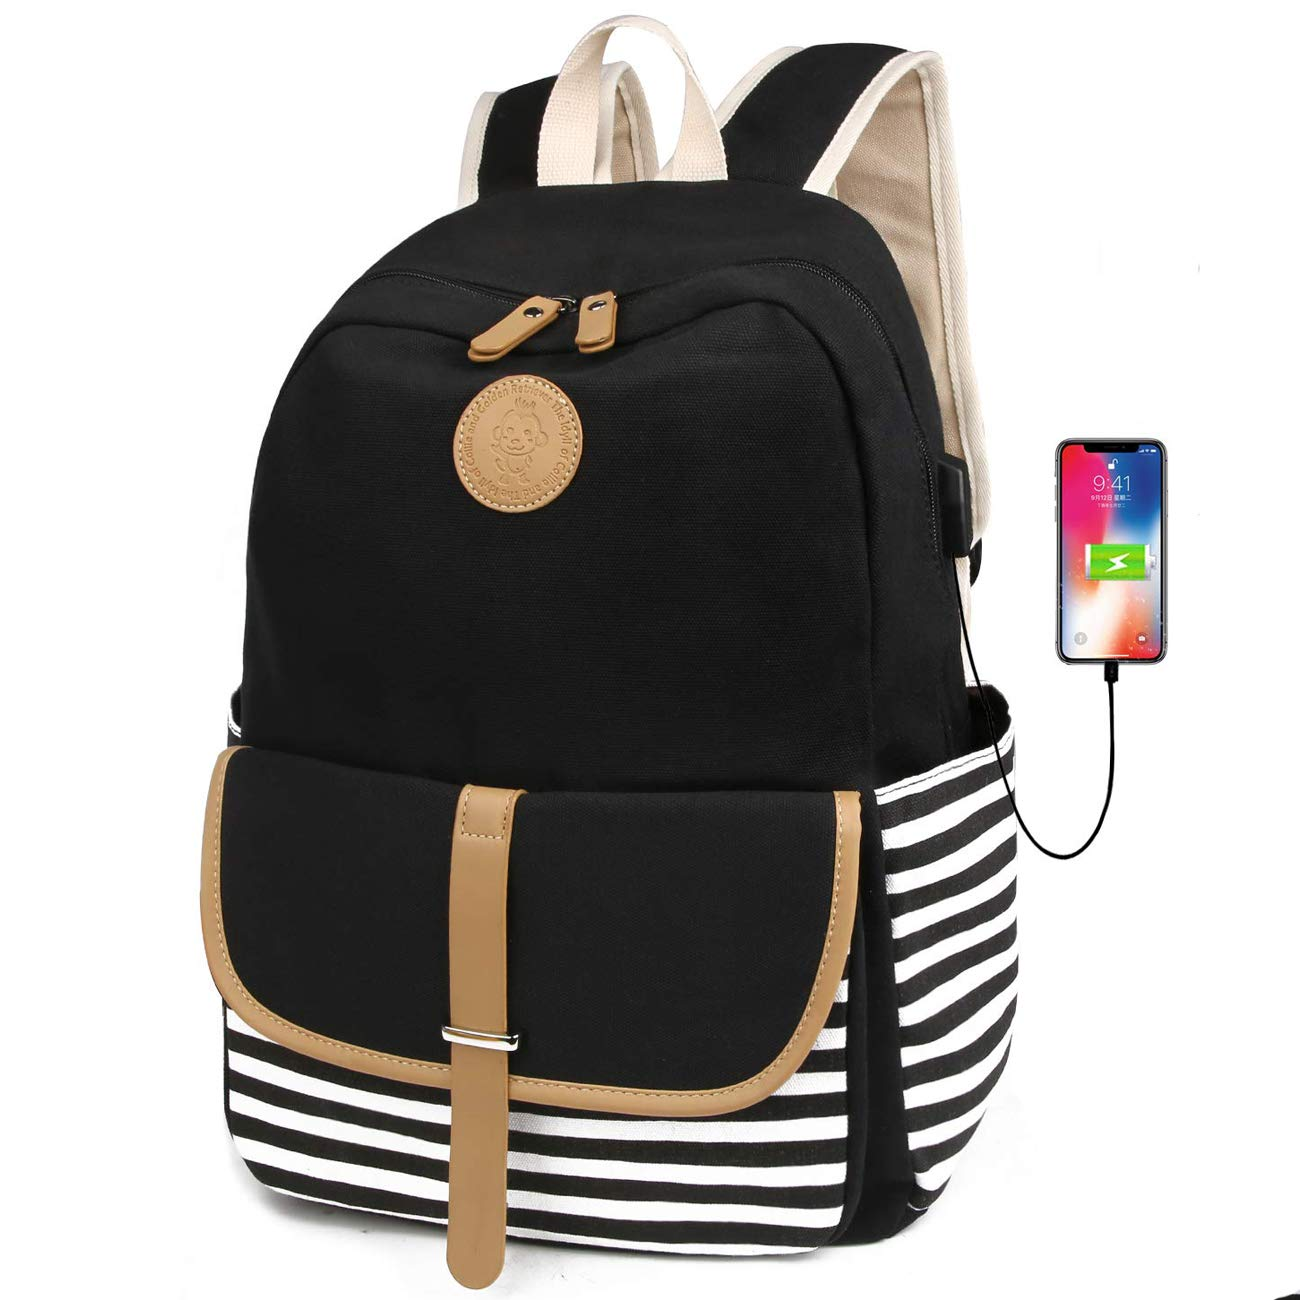 FLYMEI Canvas Laptop Bag Cute School Backpack College Bookbag Shoulder Daypack Casual Travel Bags with USB Charging Port for Teen Girls and Women by FLYMEI